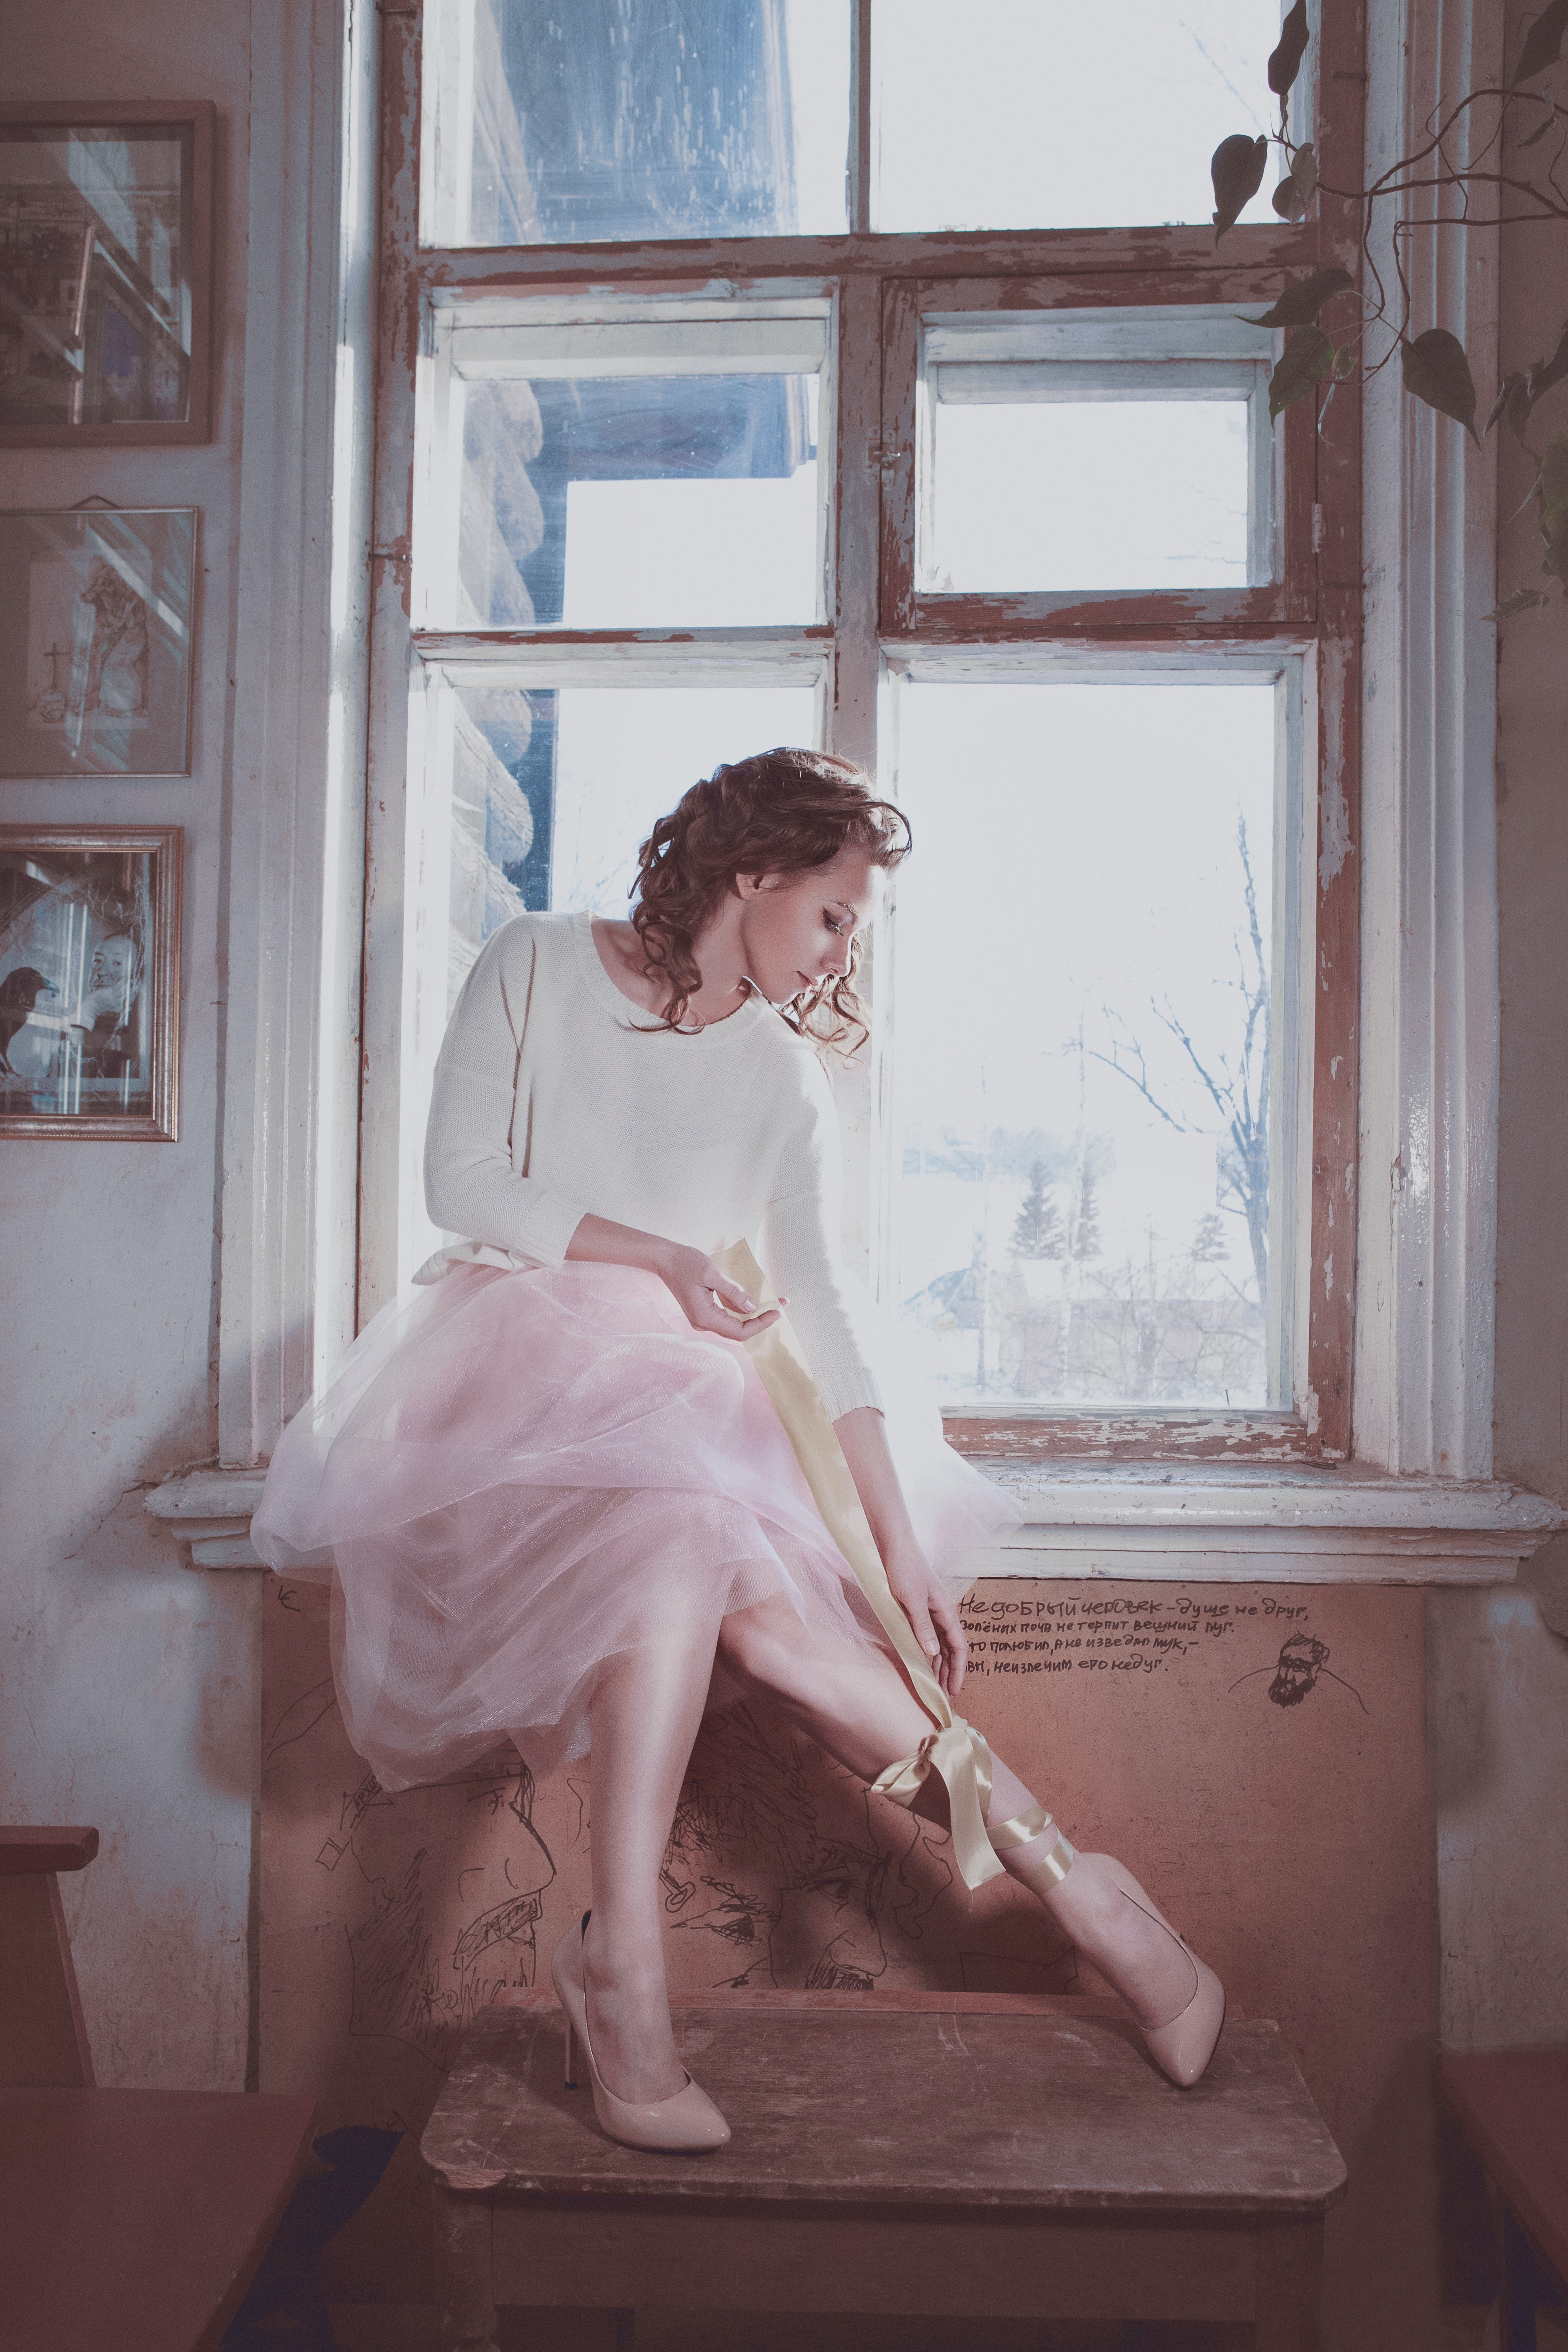 woman in white and pink dress sitting near window